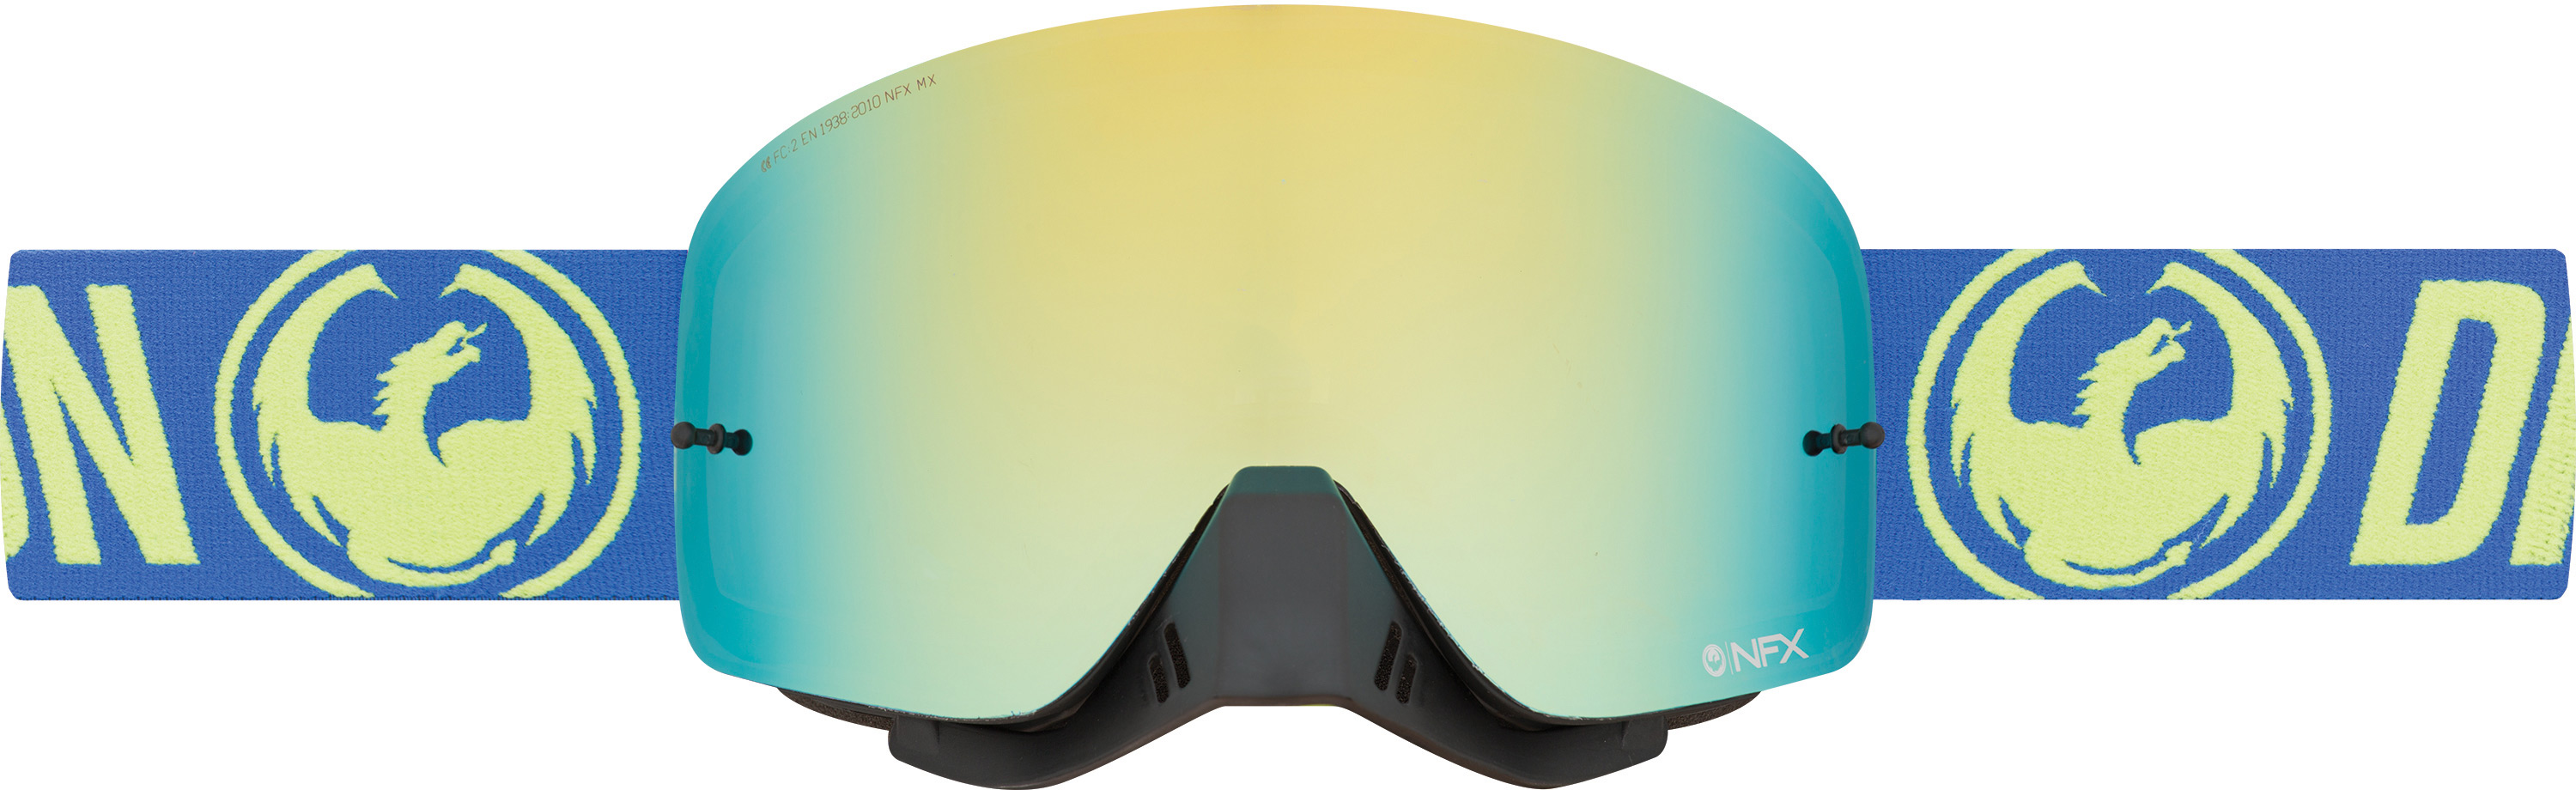 goggle-nfx-break-high---smoke-gold